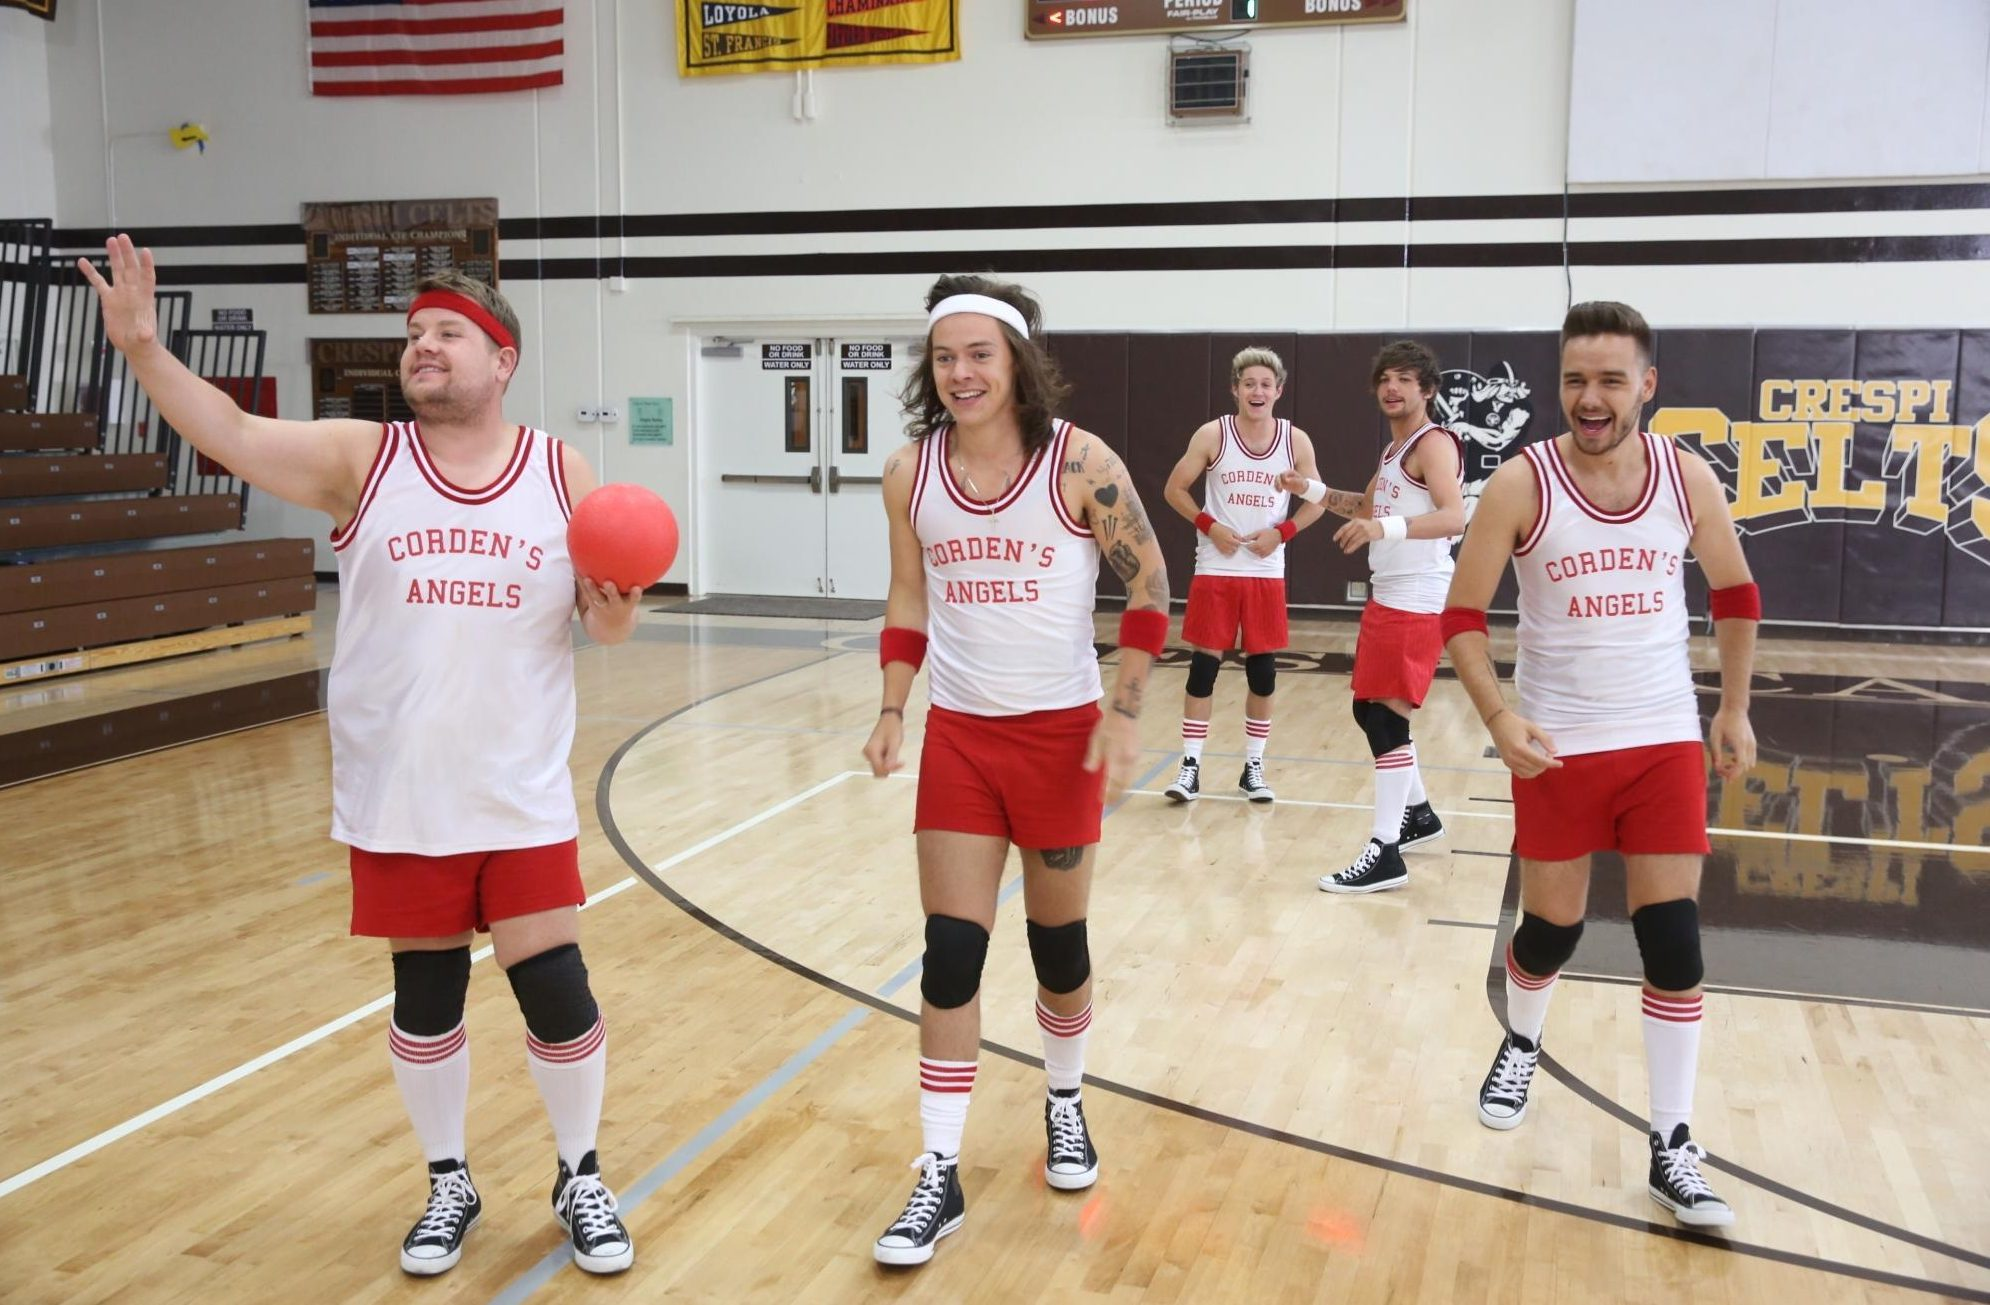 The current world champions of dodgeball